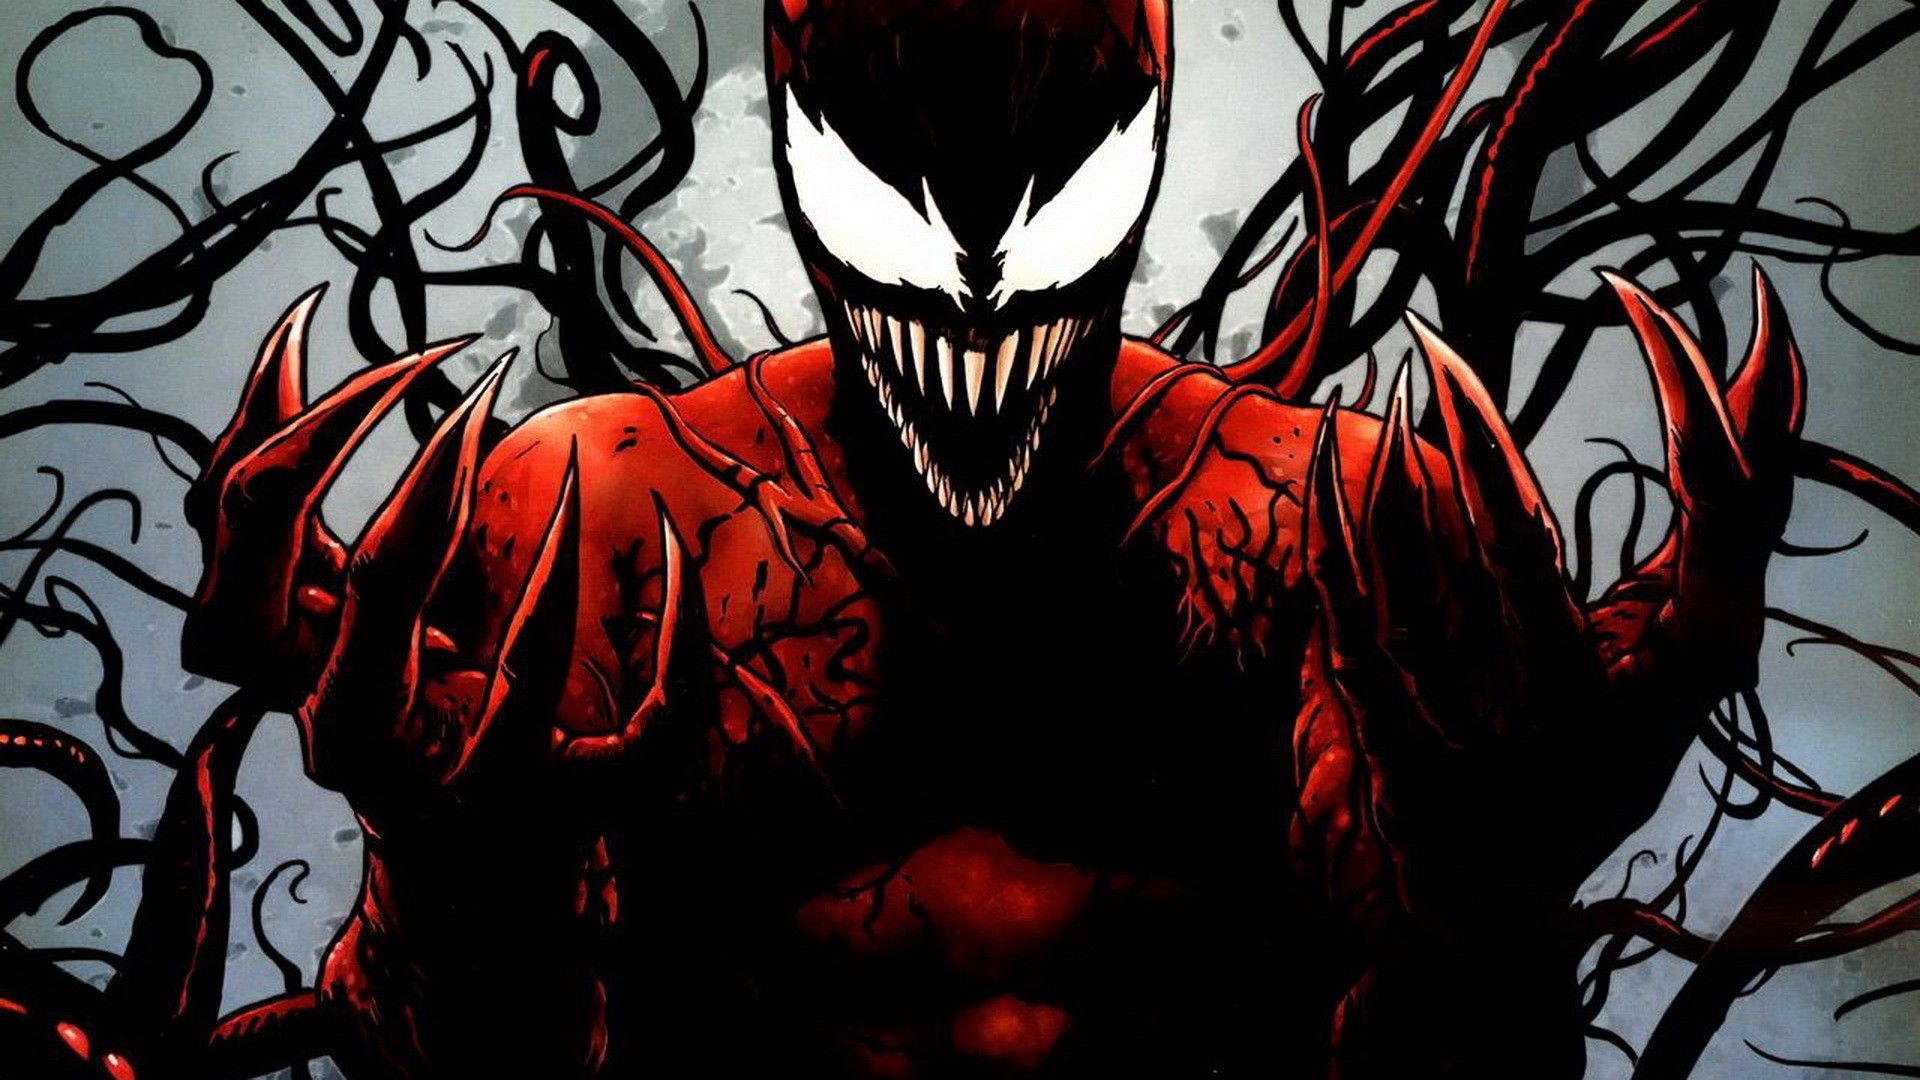 Carnage Wallpapers wallpaper, wallpaper hd, background